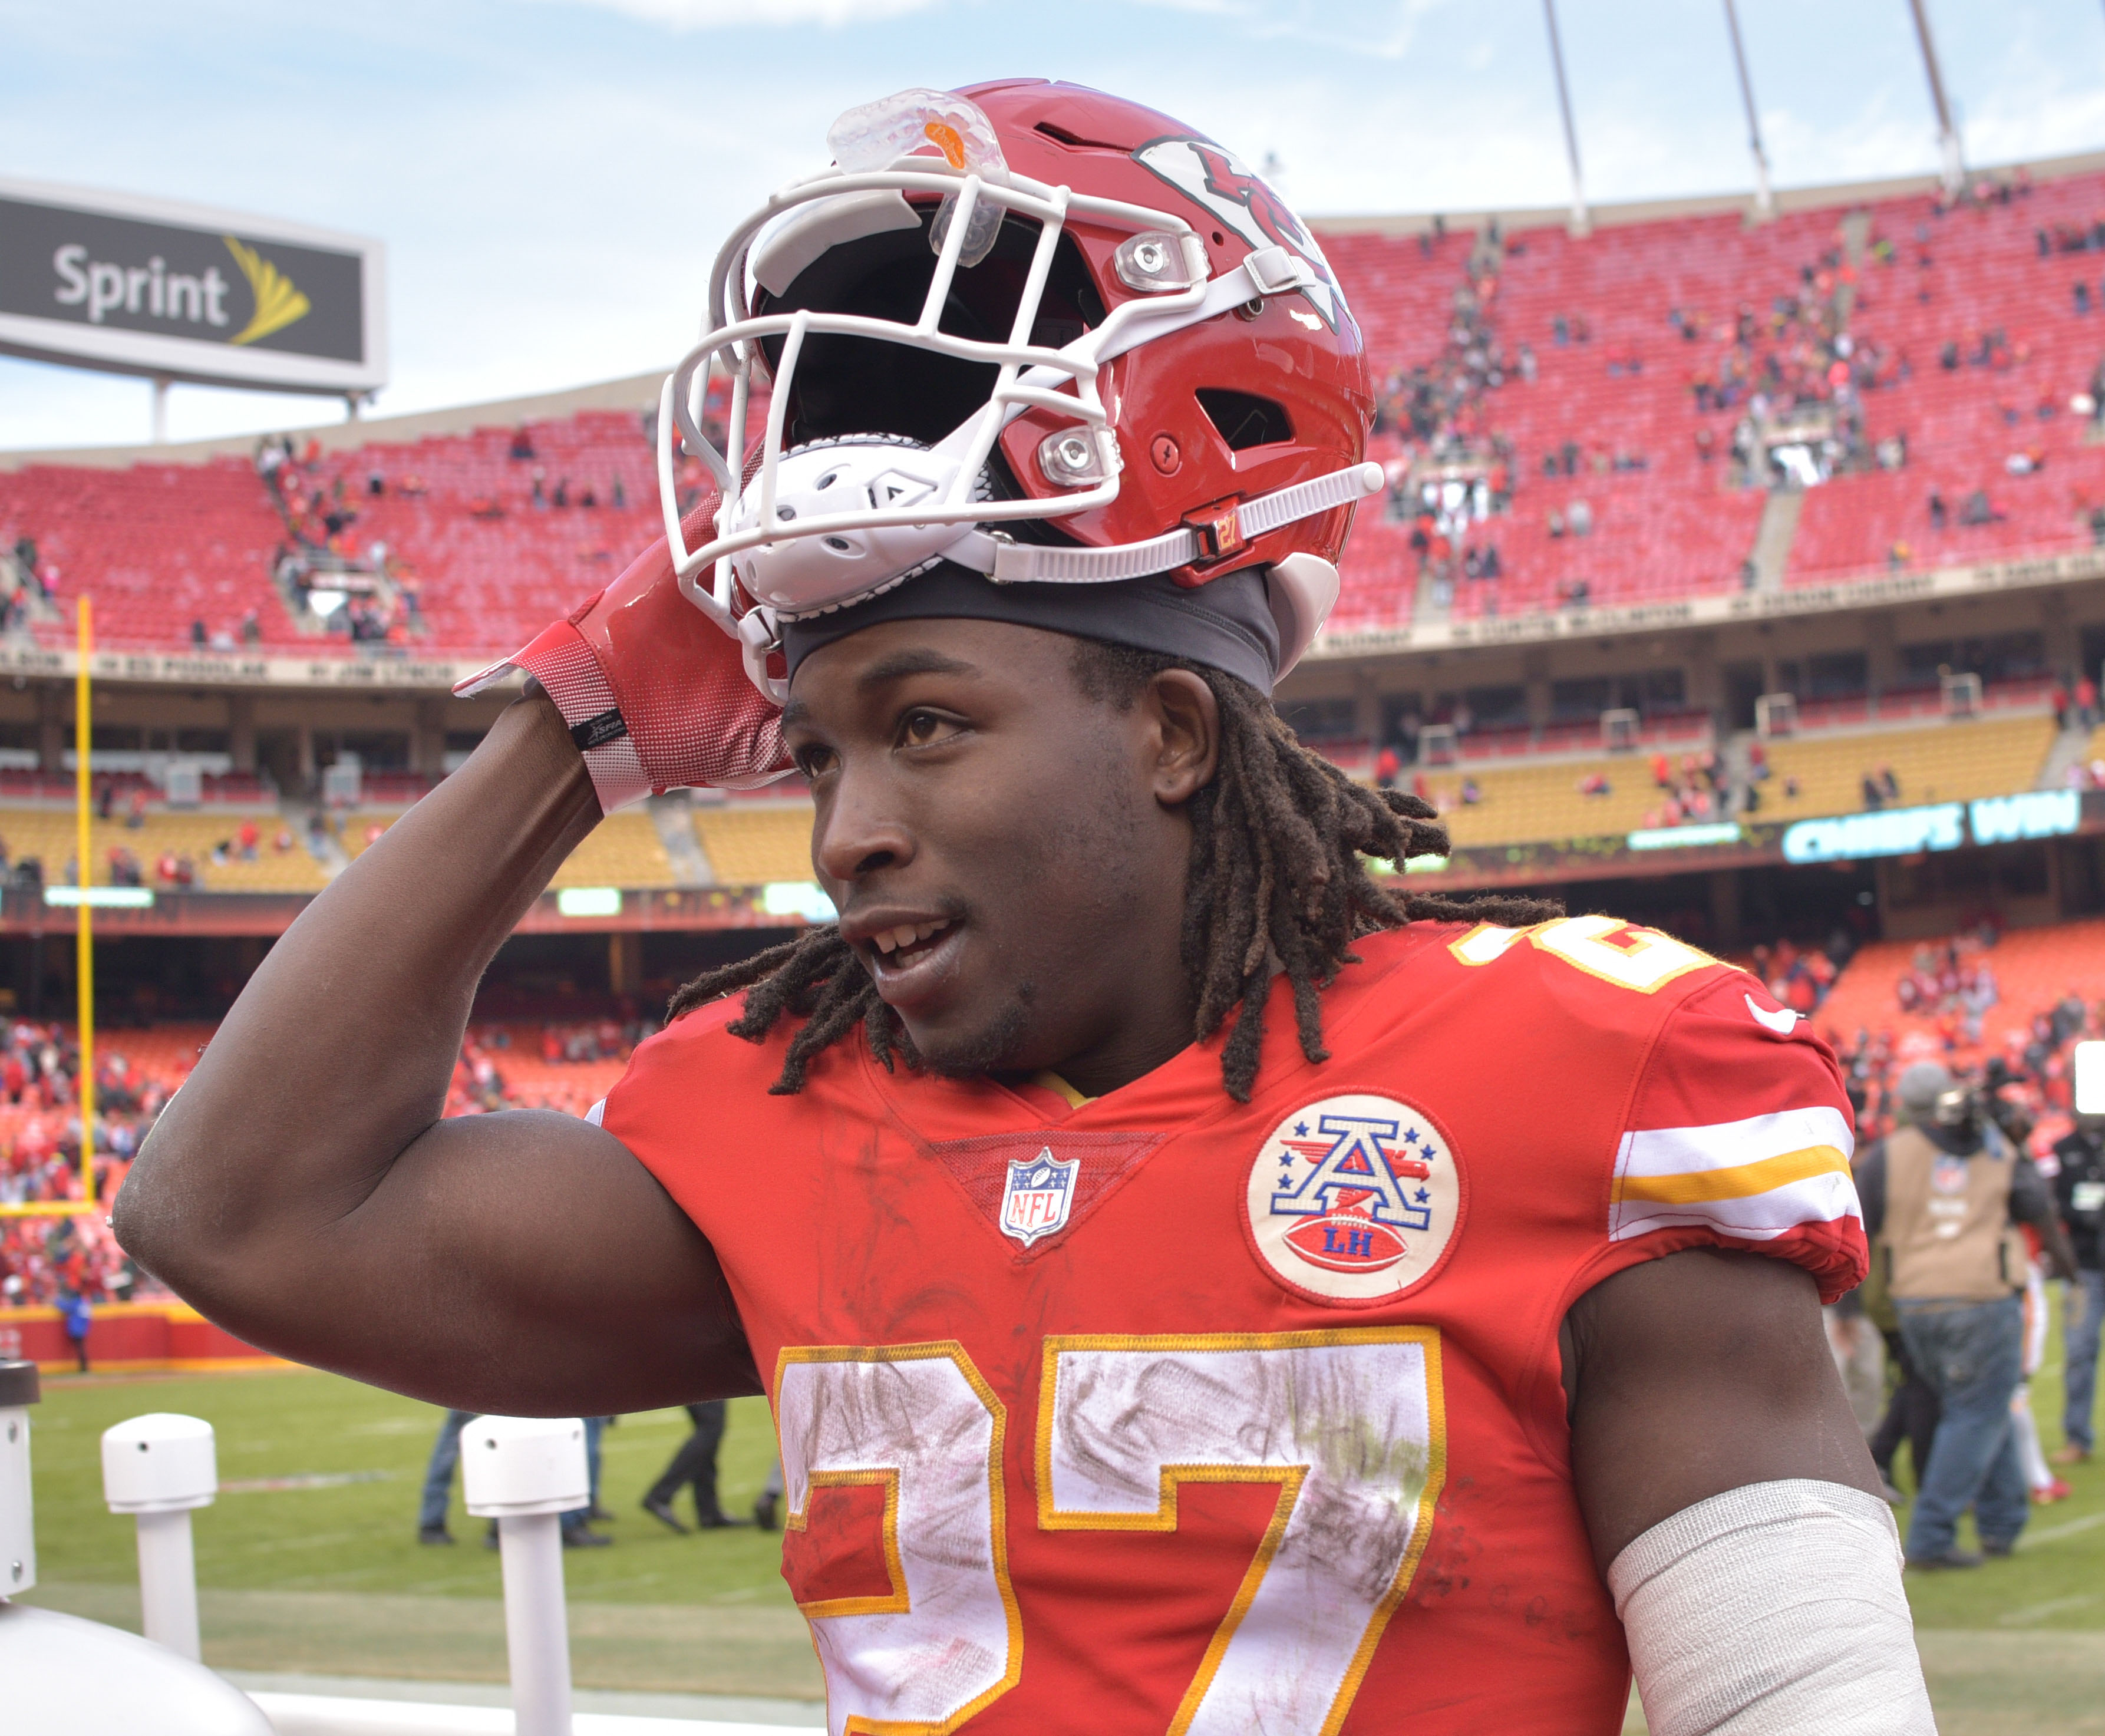 Kareem Hunt Incident Shows NFL Still Doesn't Know How to Address Issues of Domestic Violence